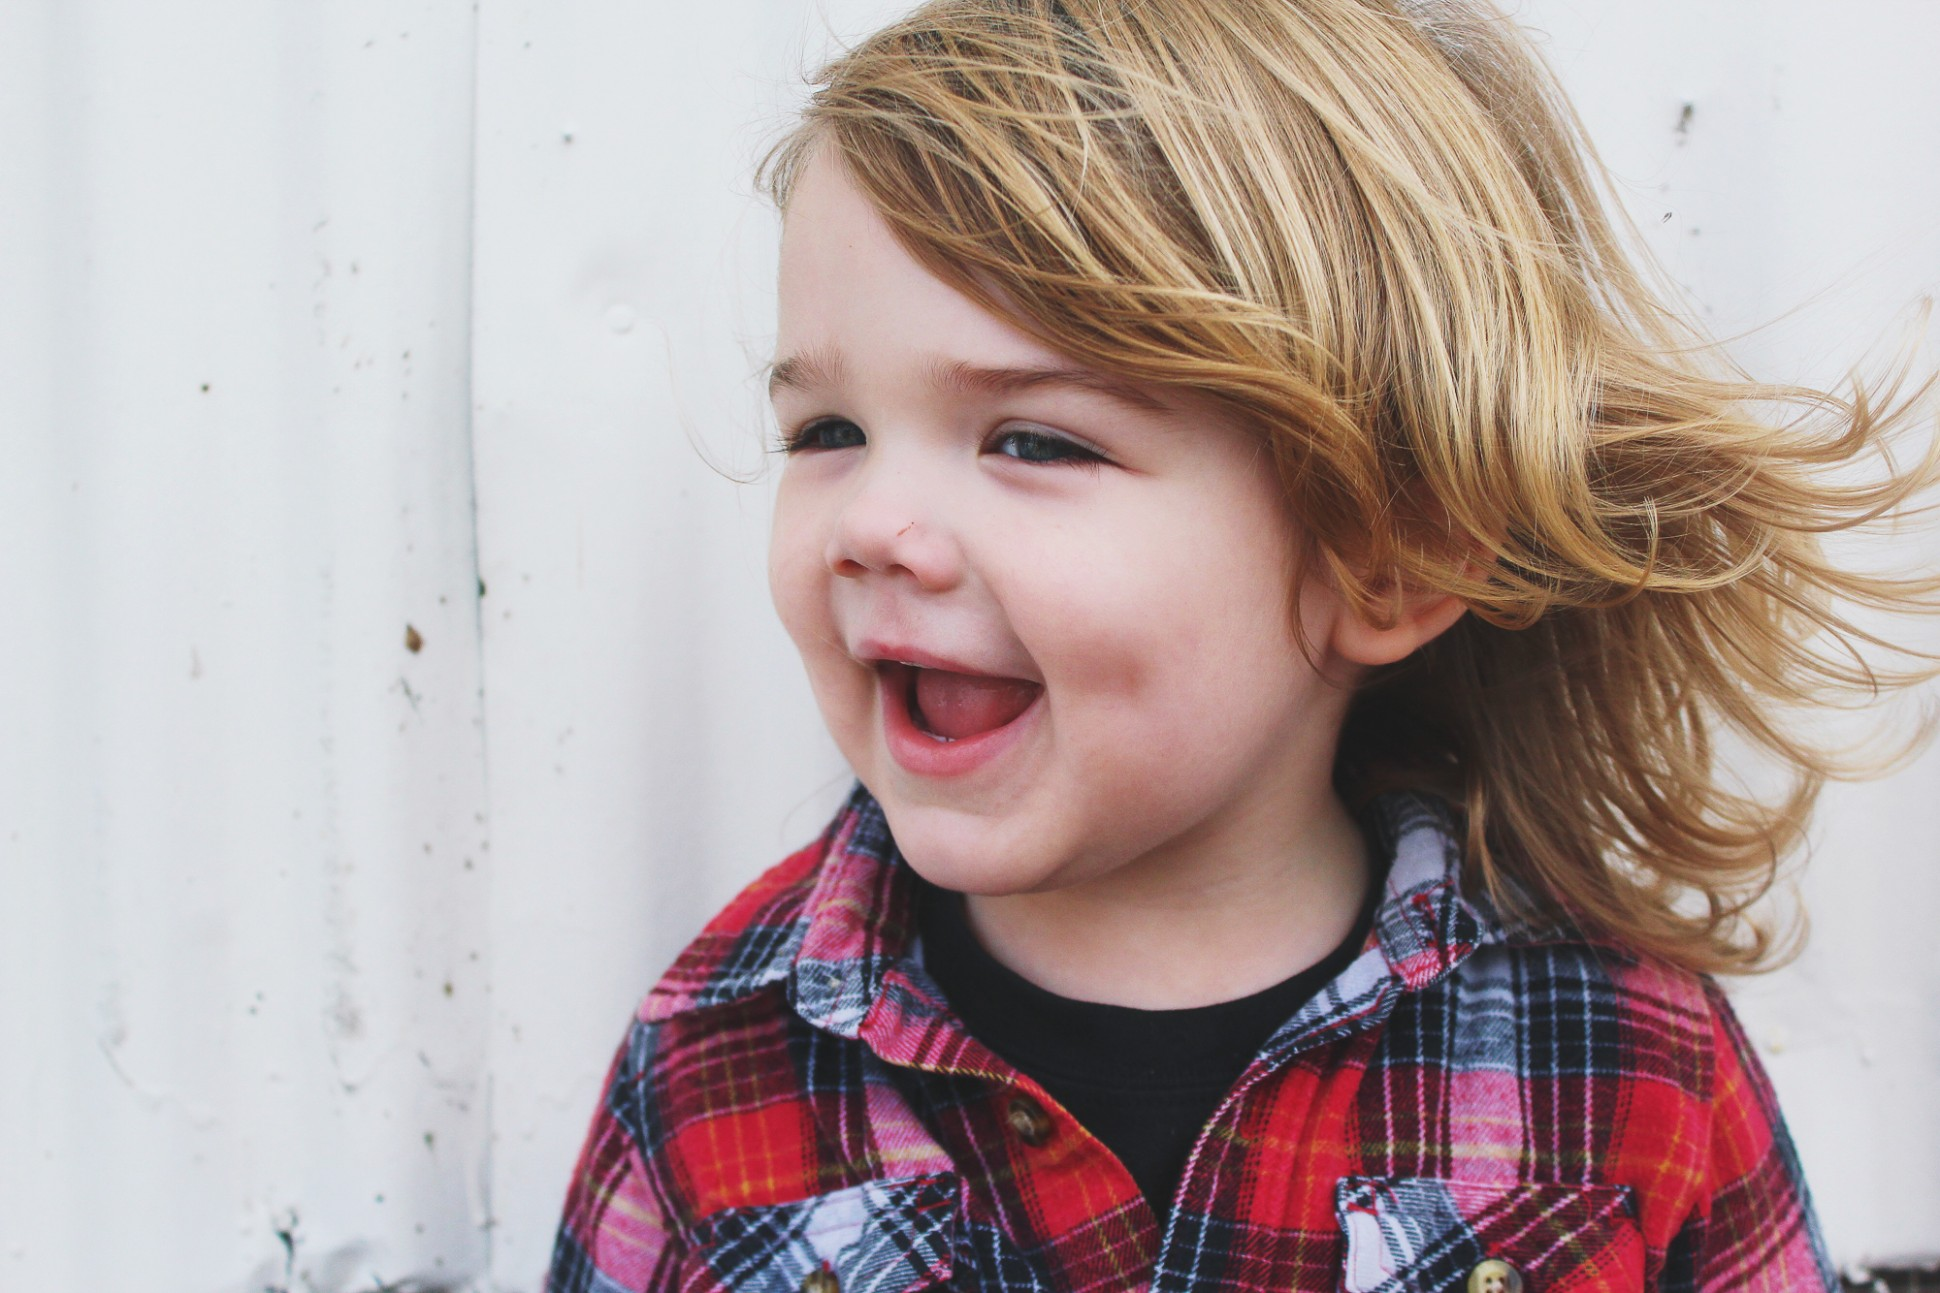 11 Toddler Boy Haircuts For Cute & Stylish Little Guys Little Boy Long Hairstyles